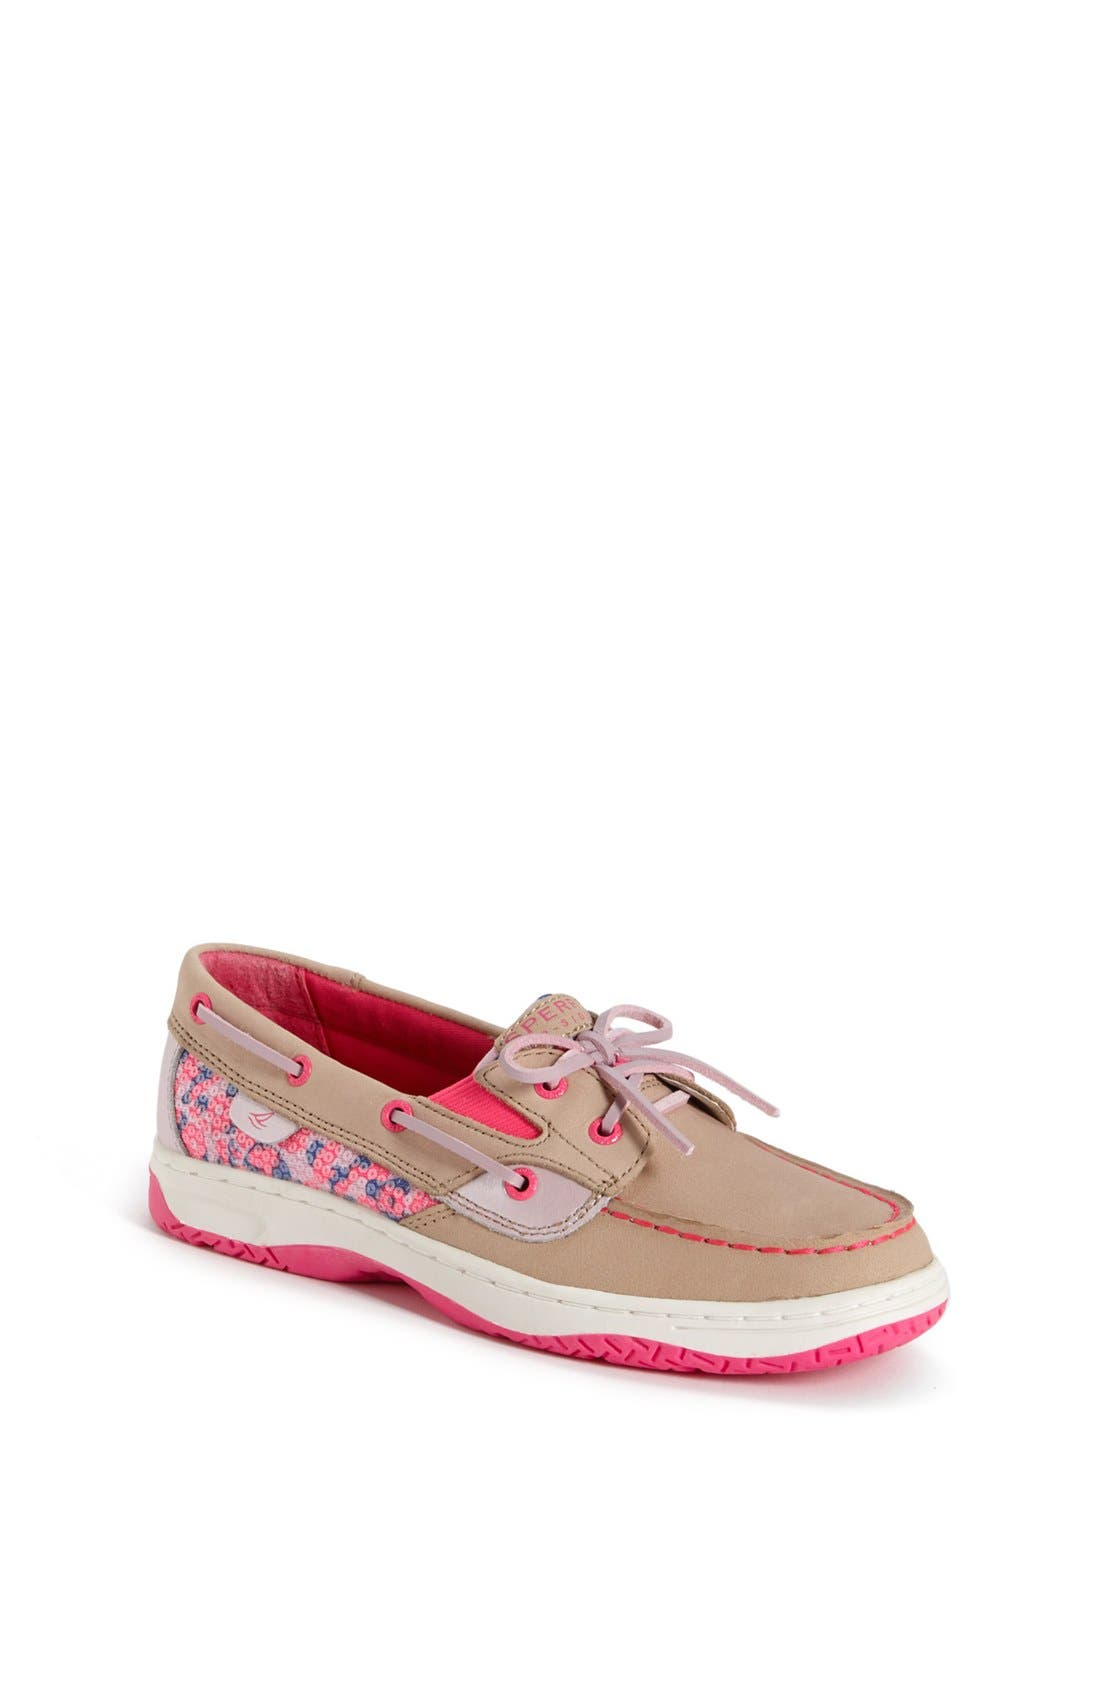 Alternate Image 1 Selected - Sperry Top-Sider® 'Butterflyfish' Boat Shoe (Walker, Toddler, Little Kid & Big Kid)